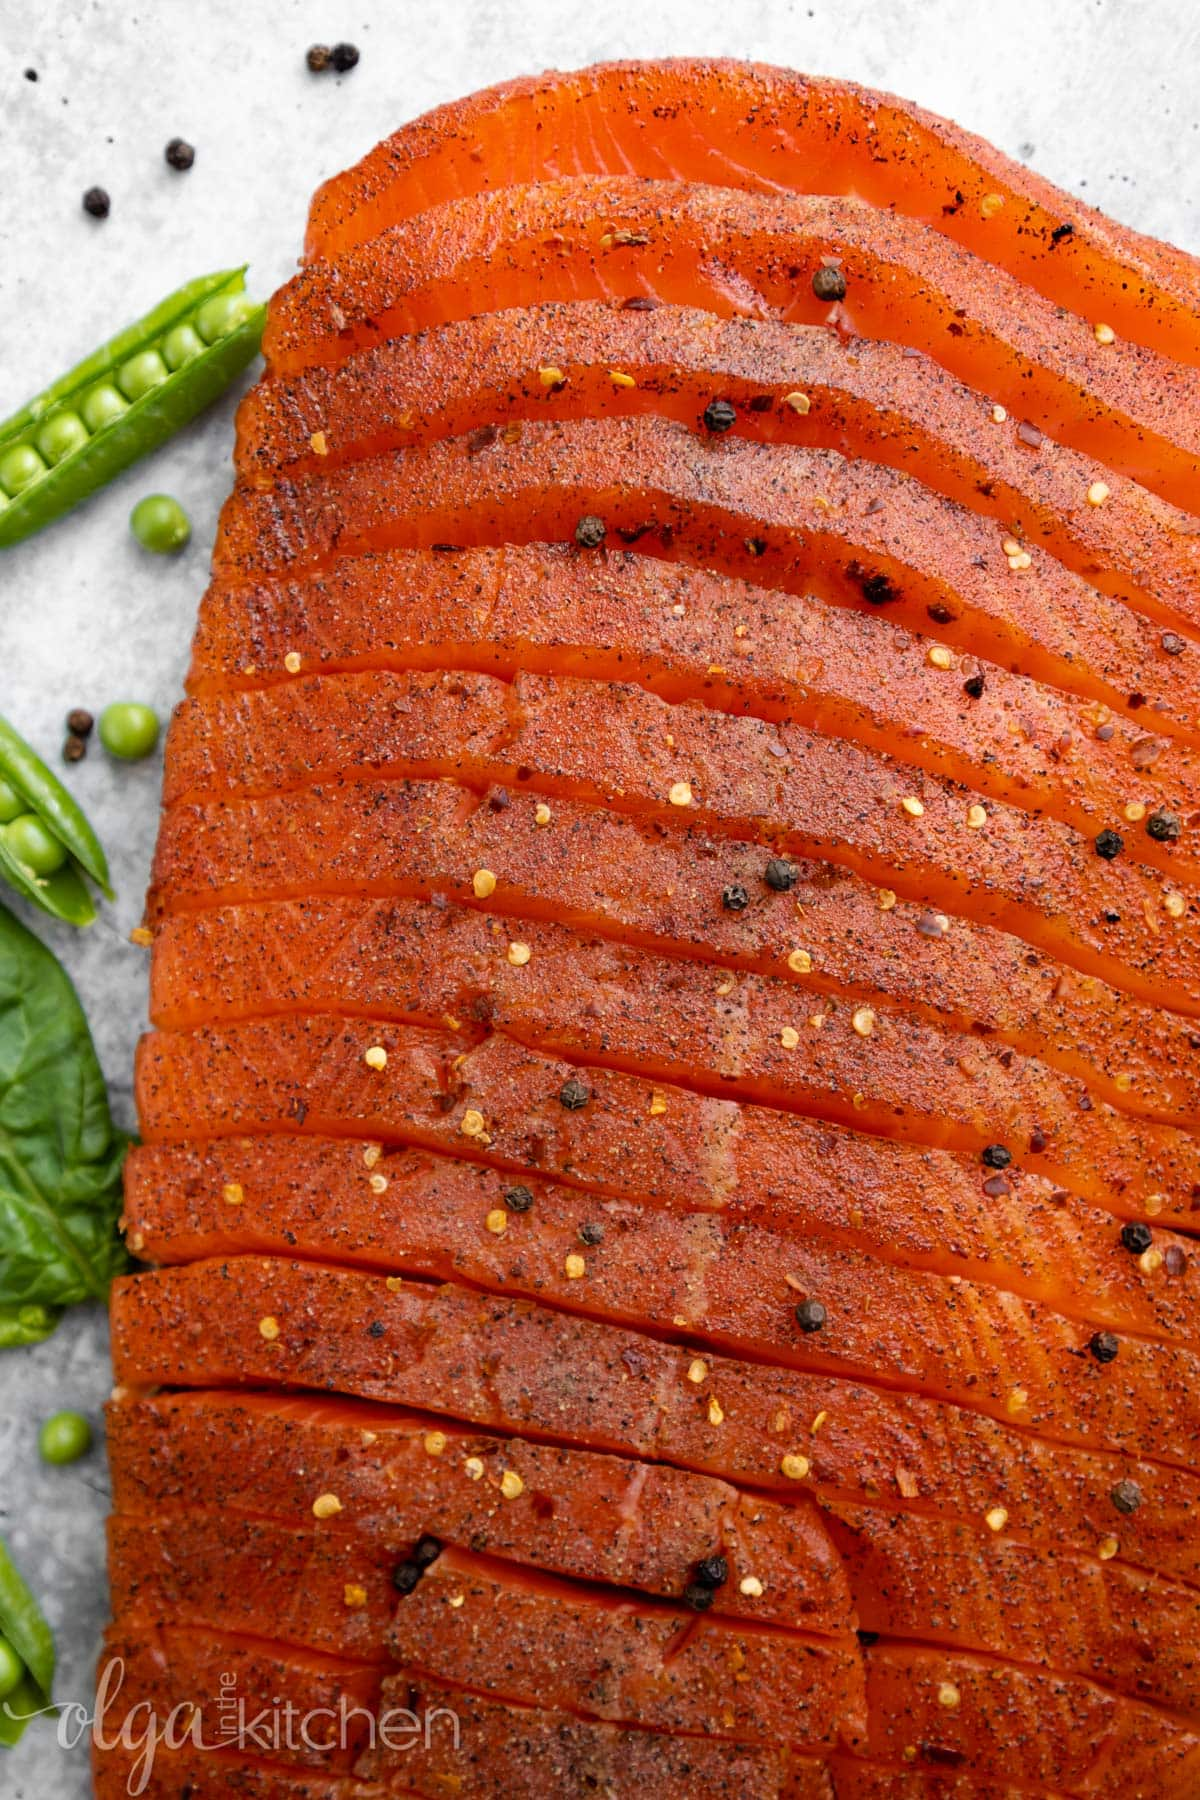 This recipe for Smoked Salmon is juicy and flaky with a simple salt, sugar and pepper cure. An easy step-by-step guide to make the best and most delicious hot Smoked Salmon at home. #smokedsalmon #salmon #olgainthekitchen #holiday #summer #homemade